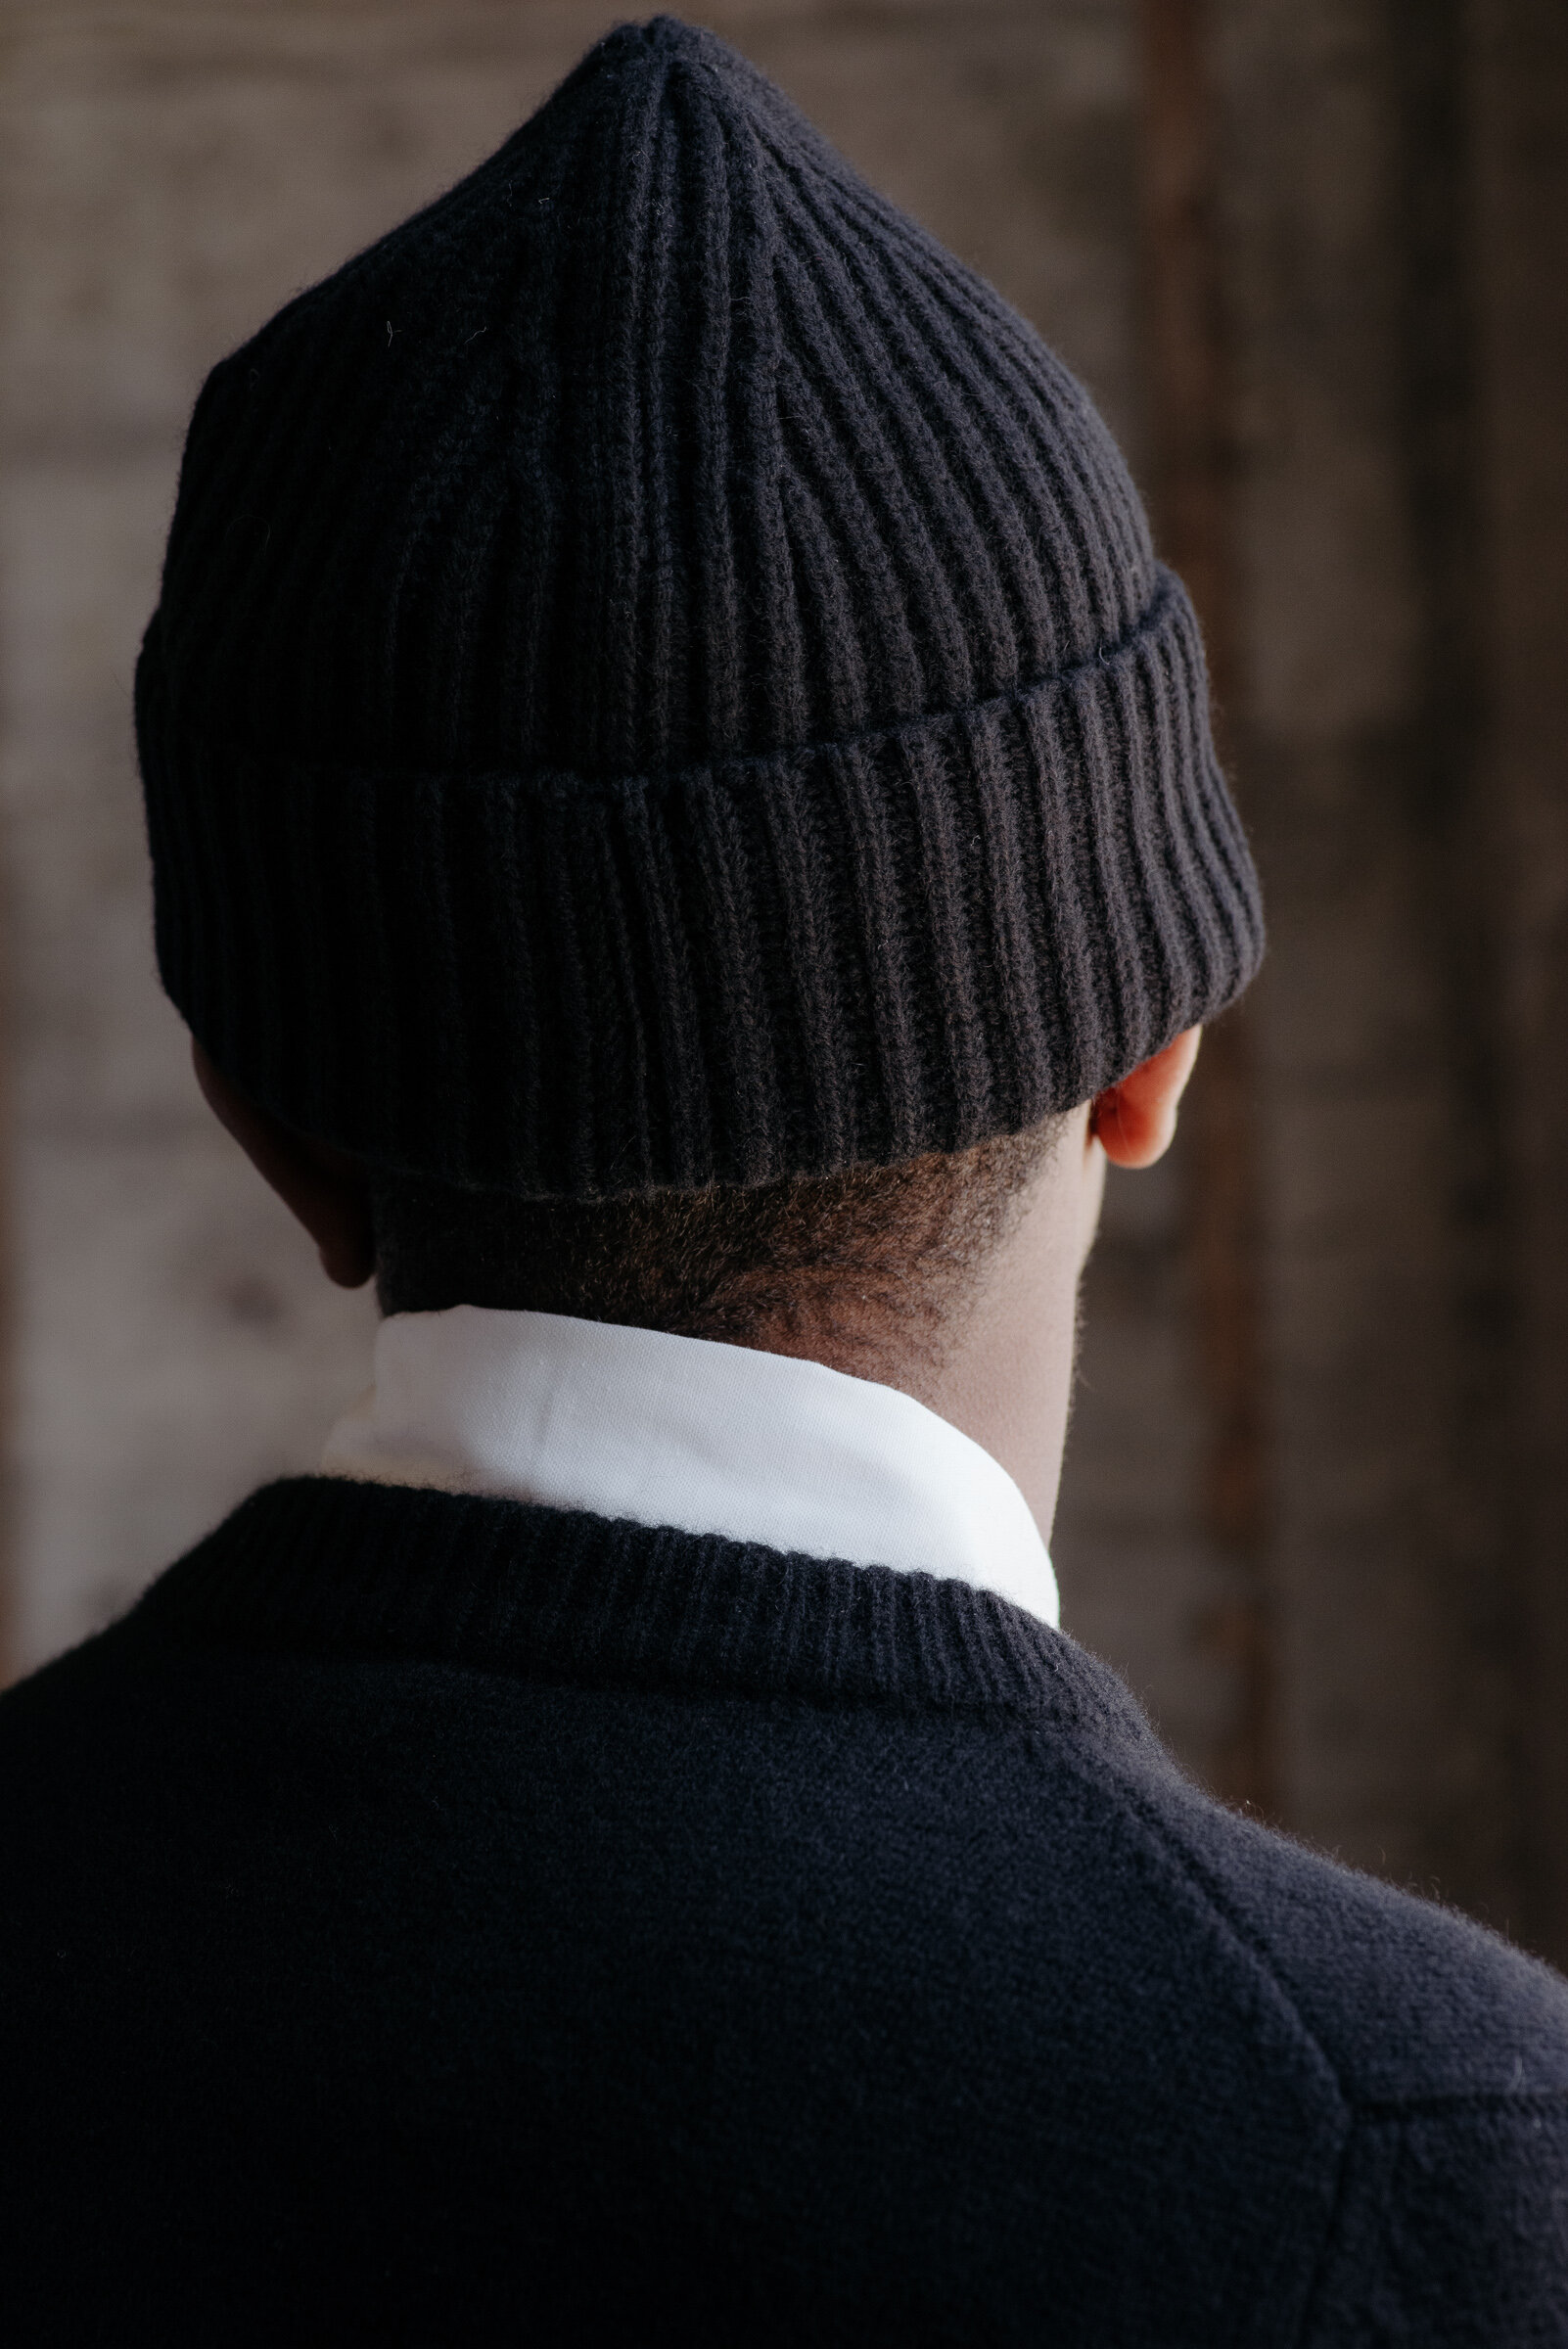 evan-kinori-knit-hat-beanie-cashmere-lambswool-made-in-italy-5